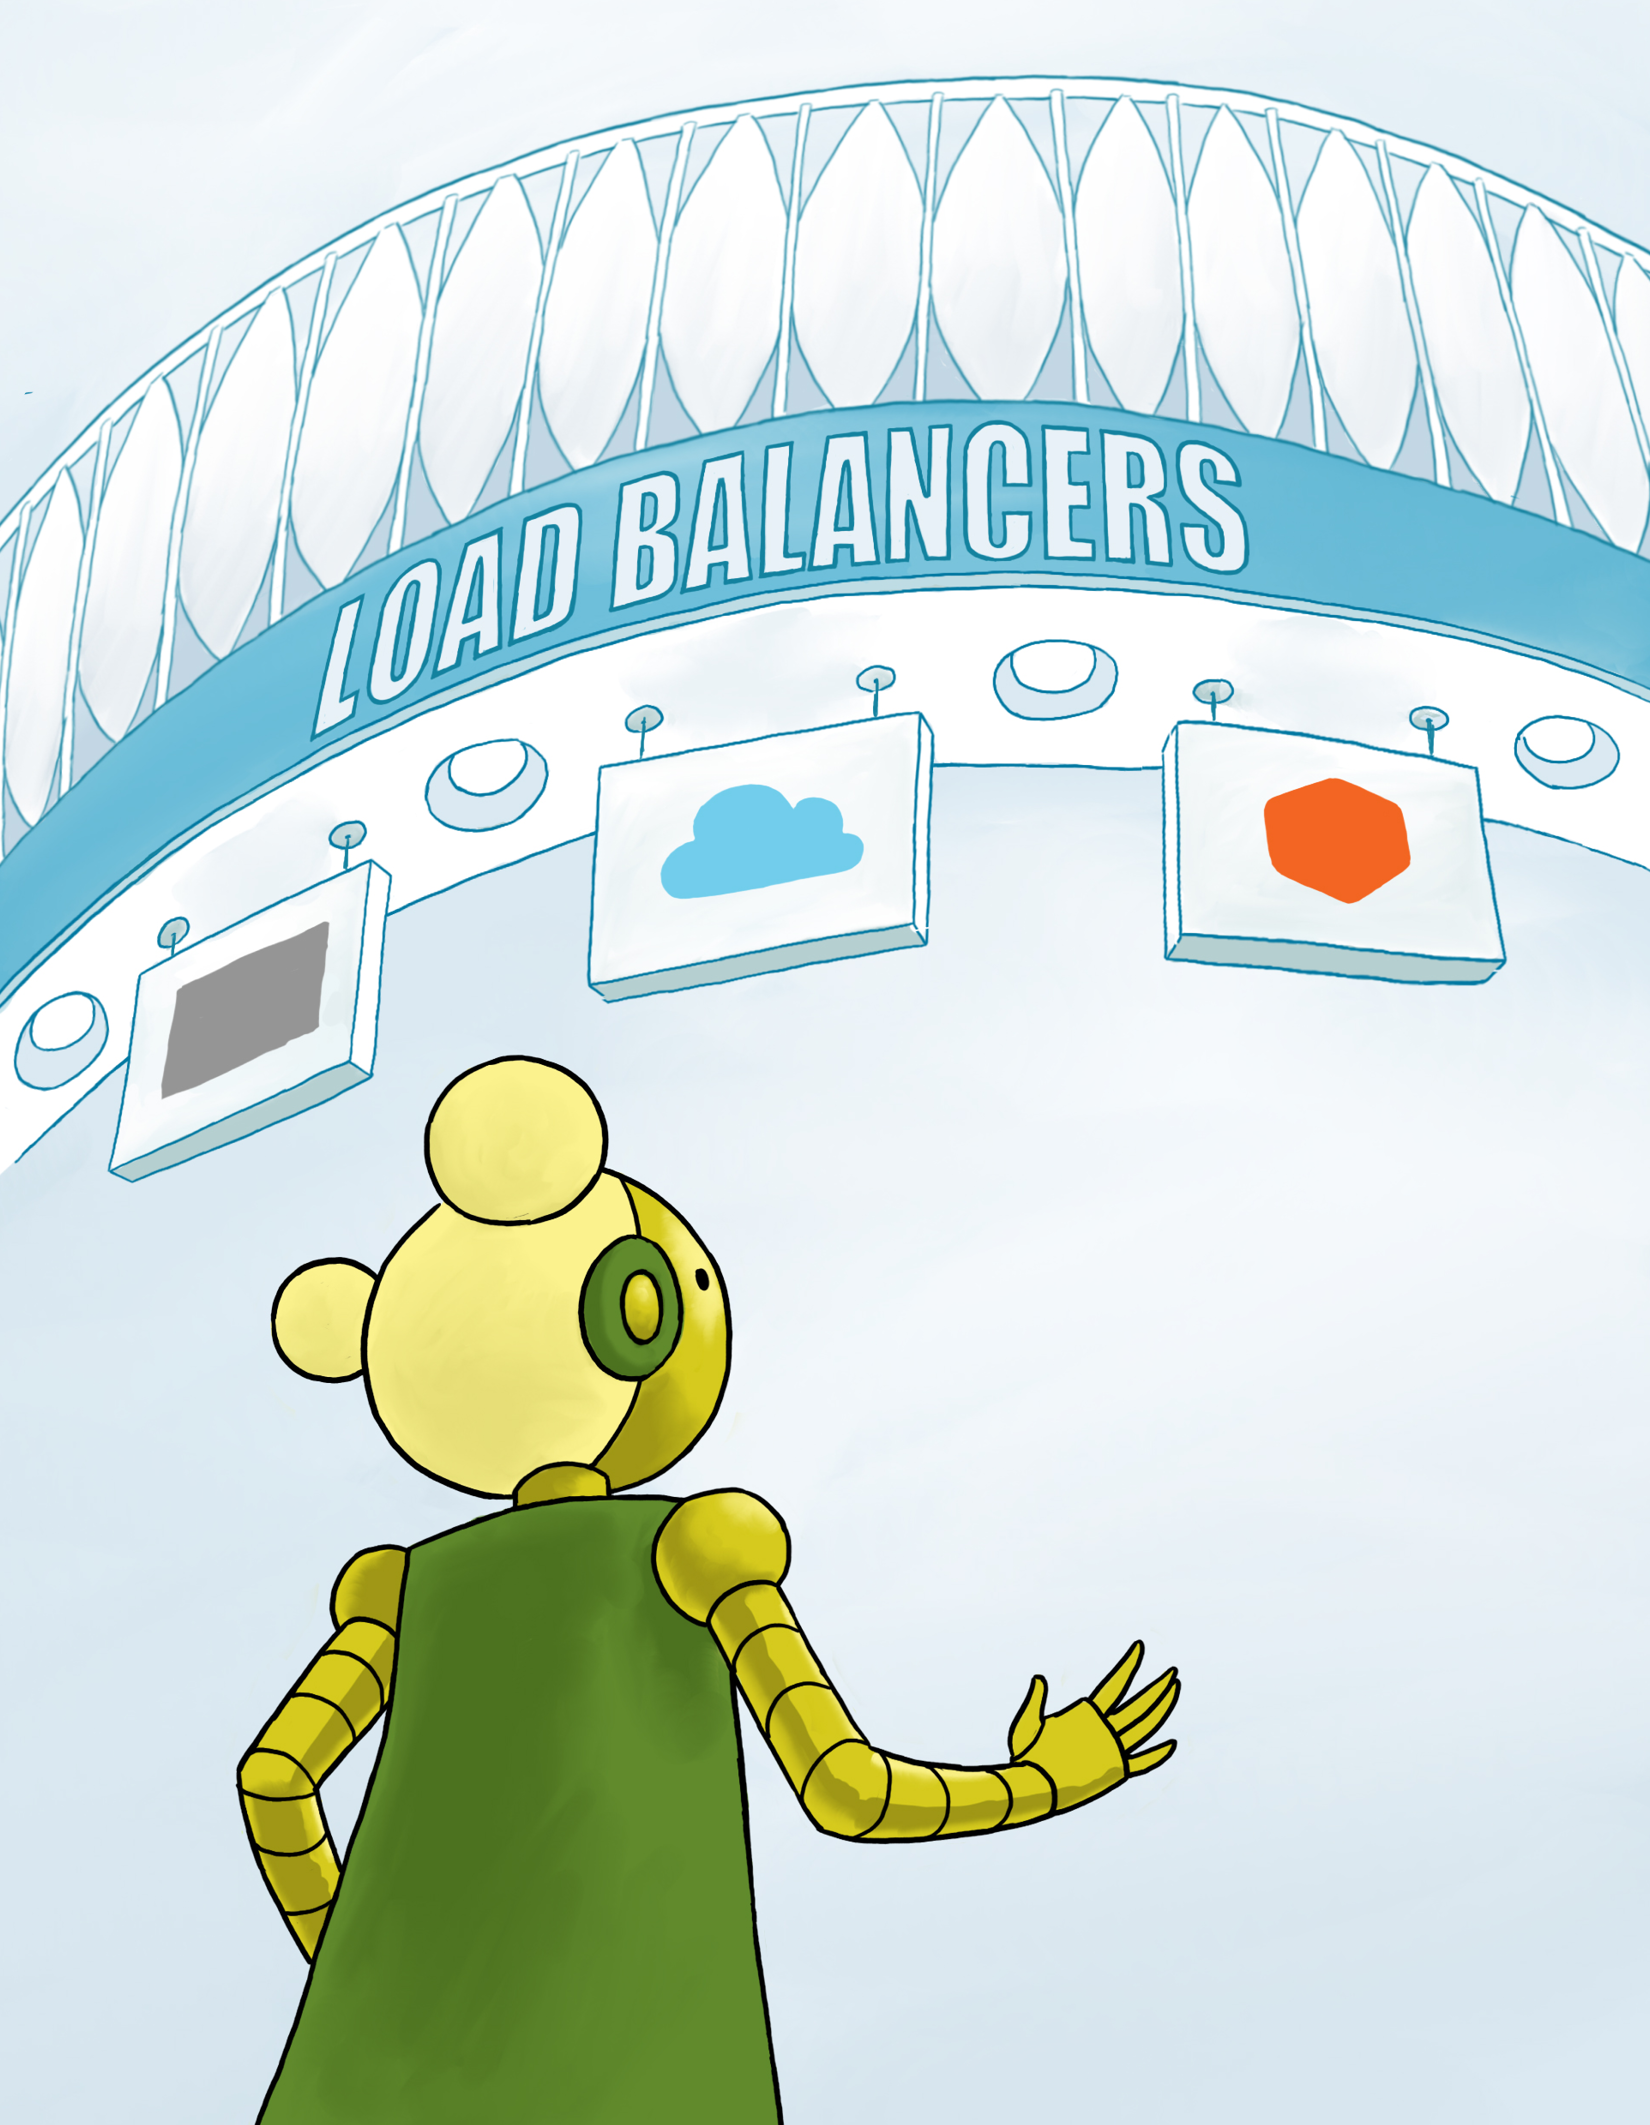 goldilocks-avi-load-balancers